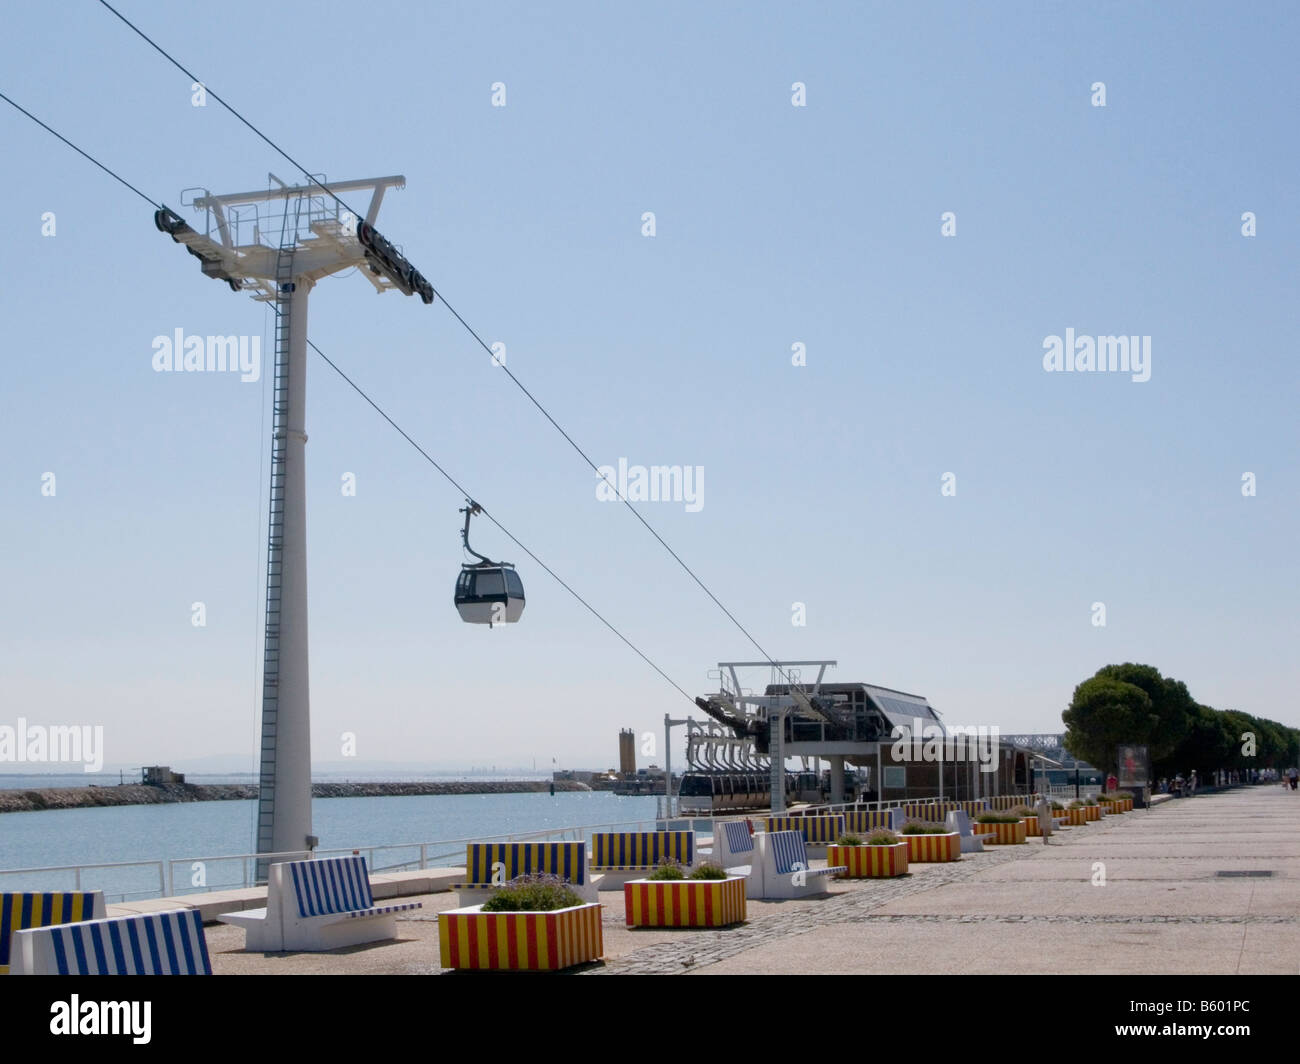 Cable cars and striped benches on the Passeio de Neptuno on the banks of the Tagus, Oriente, Lisbon, Portugal - Stock Image